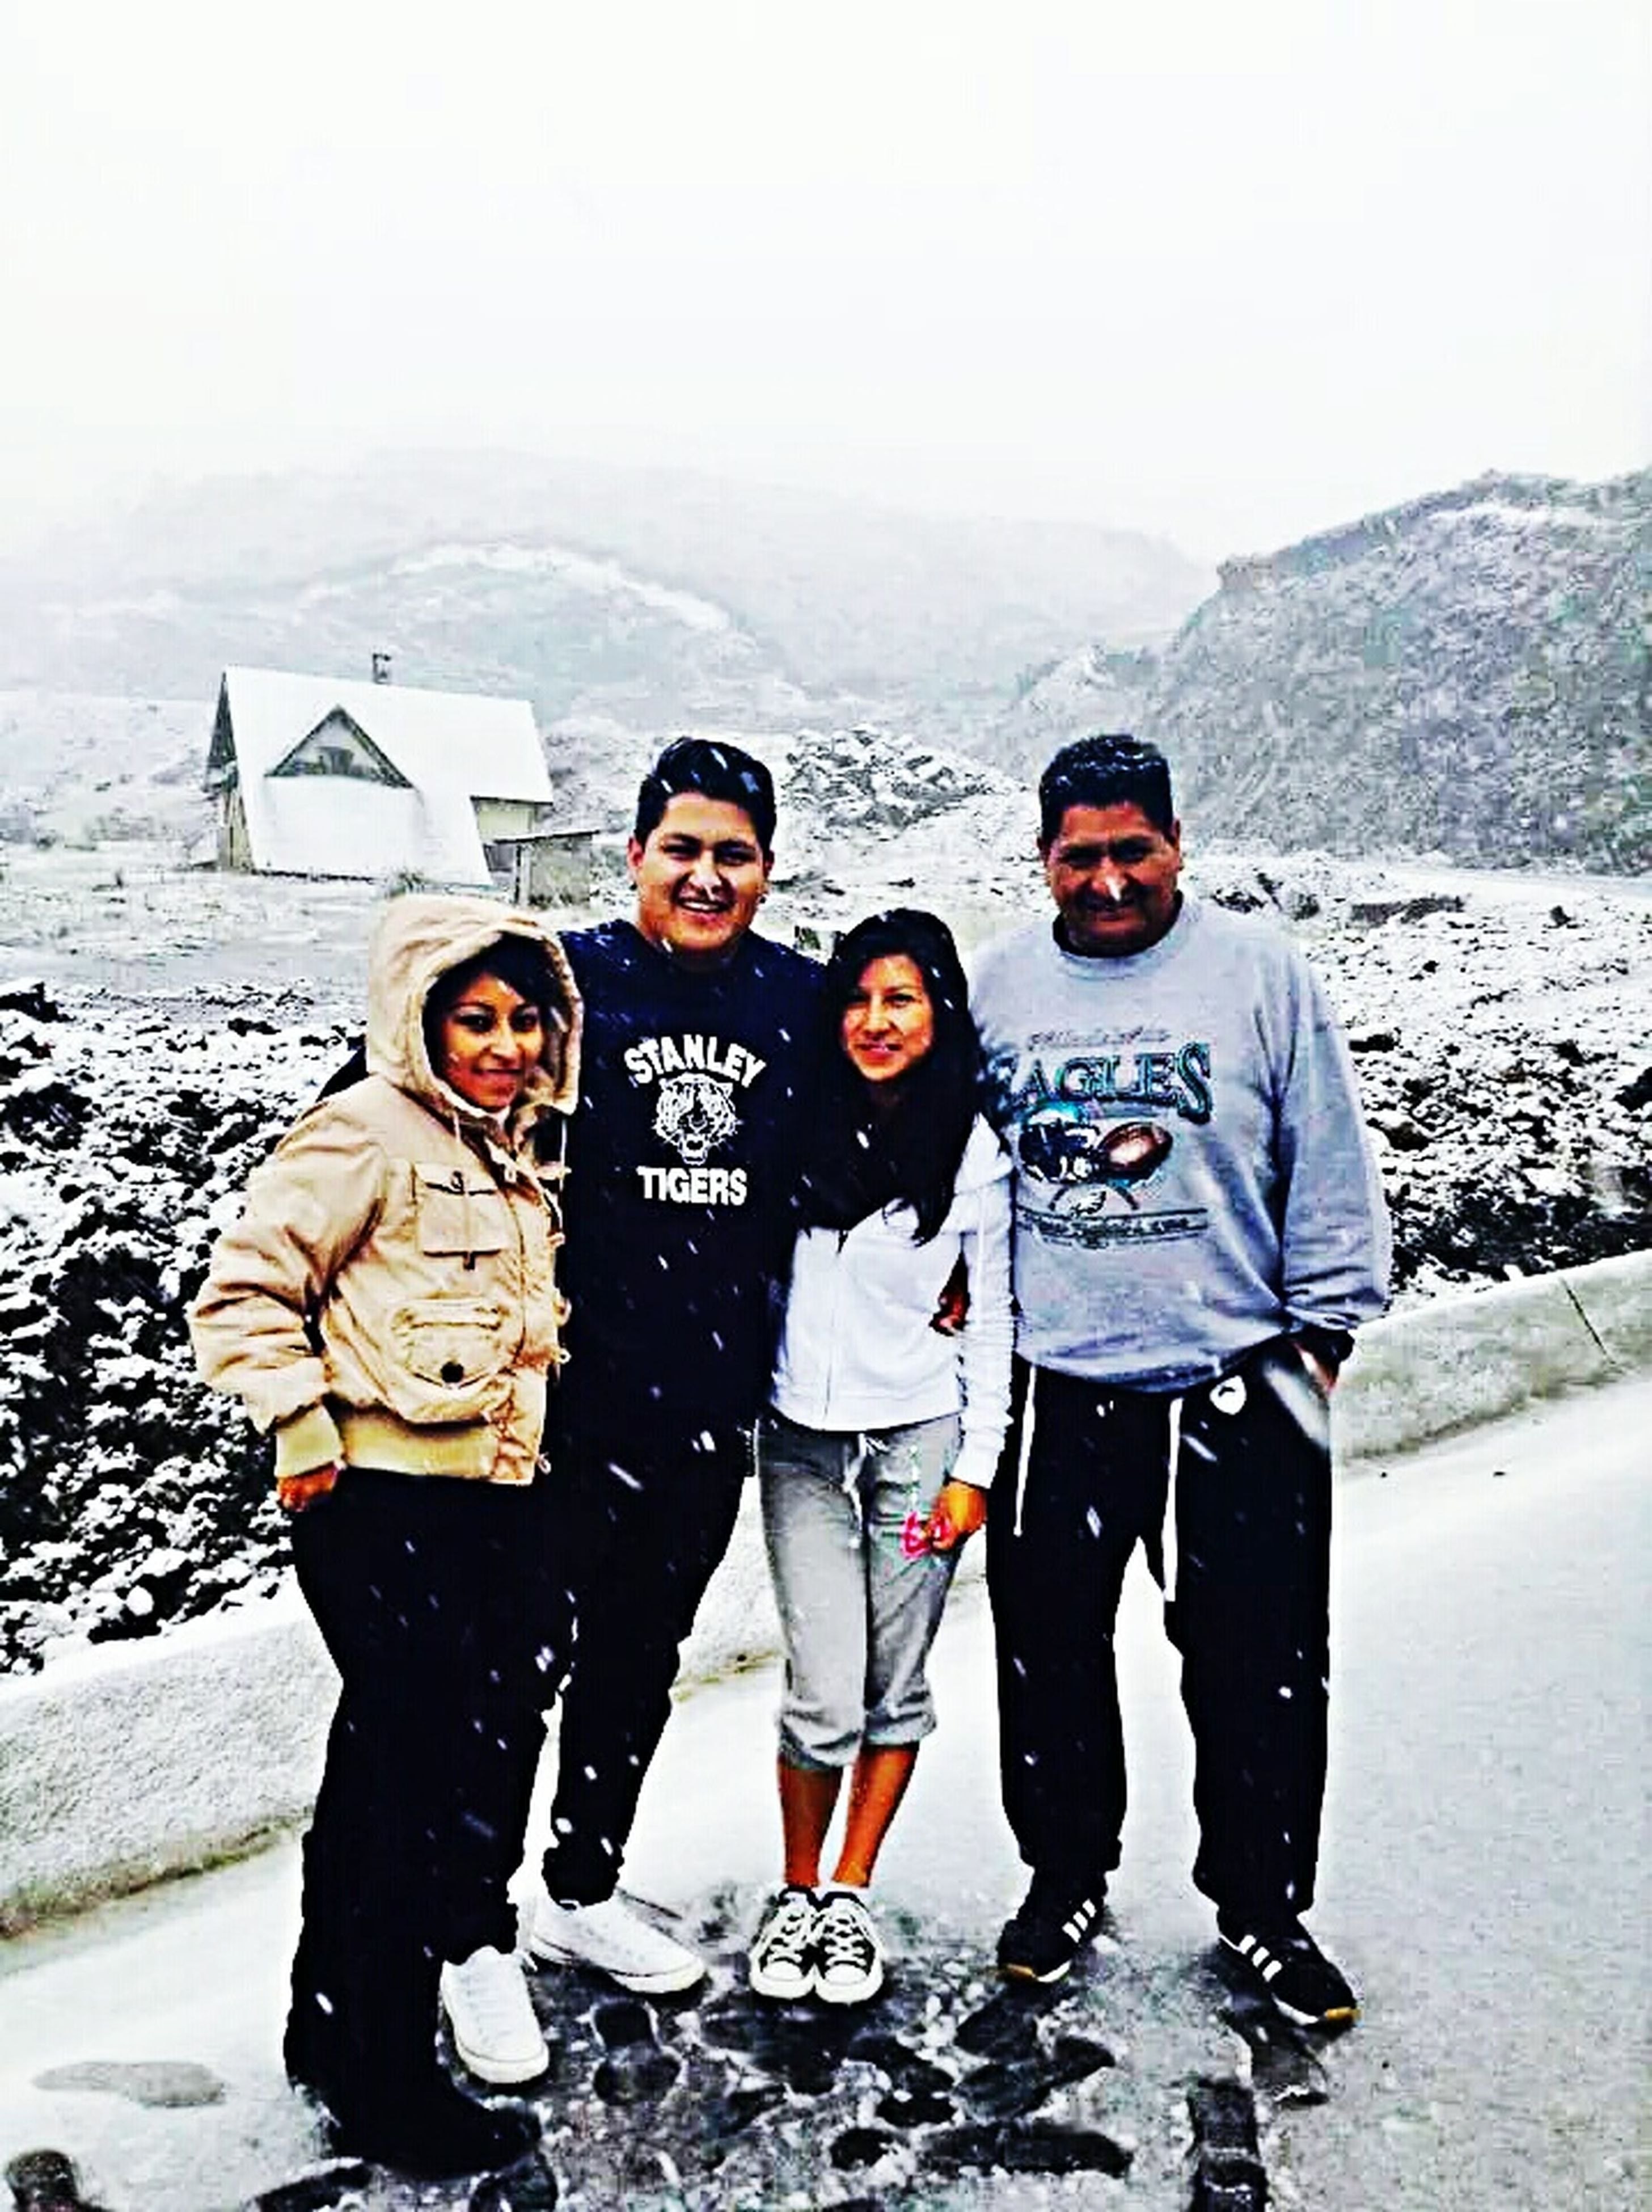 lifestyles, togetherness, leisure activity, bonding, full length, winter, love, casual clothing, standing, warm clothing, cold temperature, snow, boys, childhood, family, season, friendship, girls